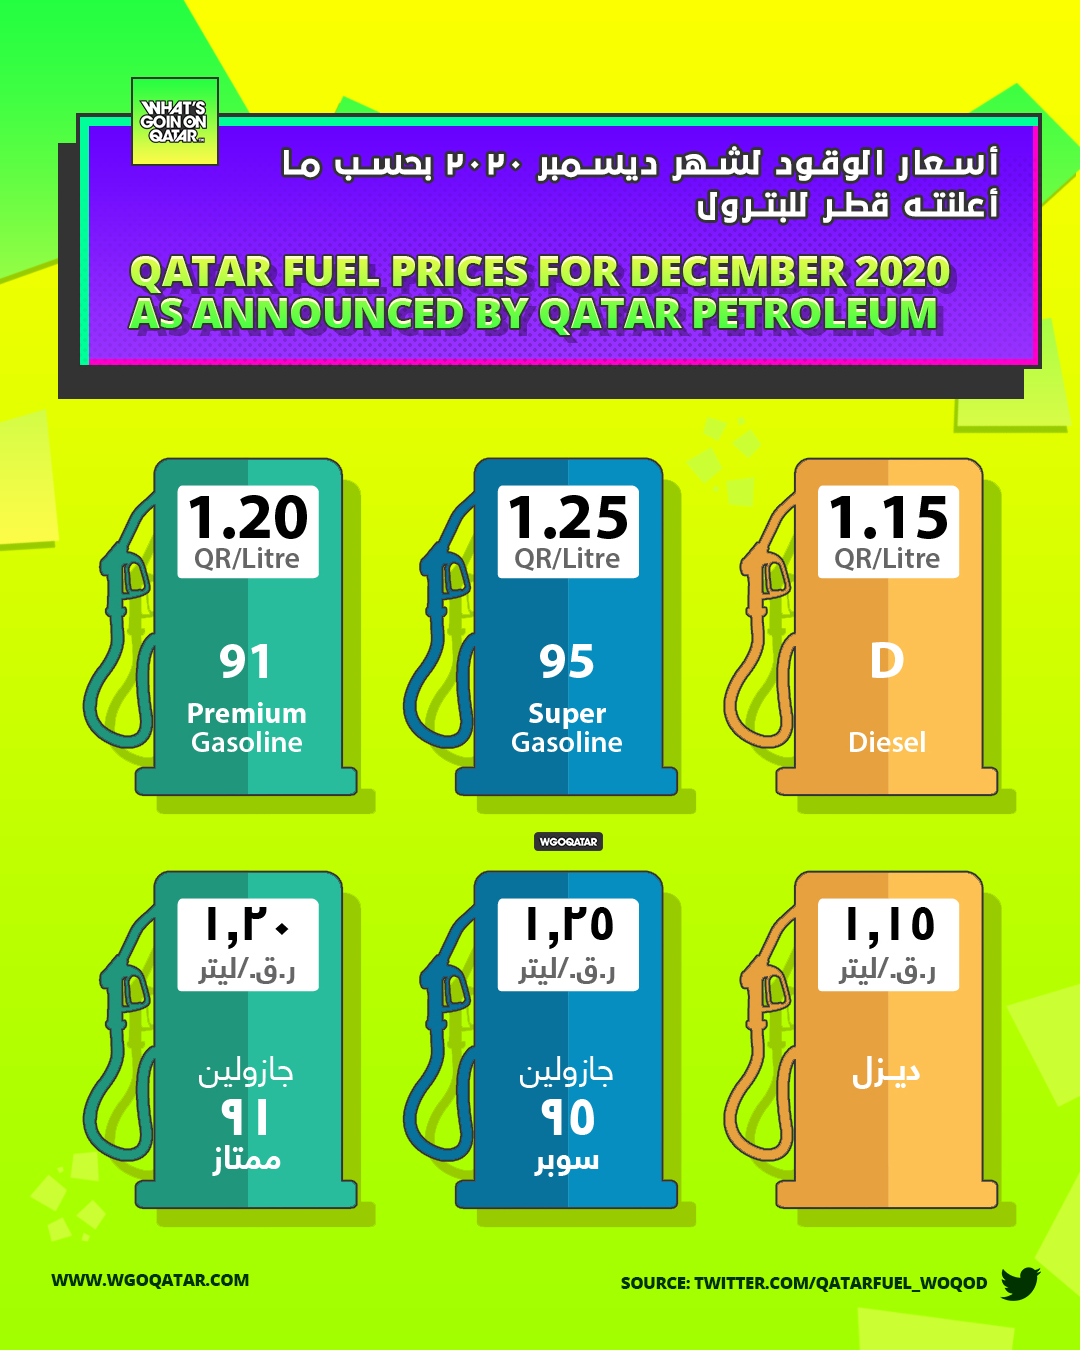 Qatar Petroleum Announces Fuel Prices for December 2020